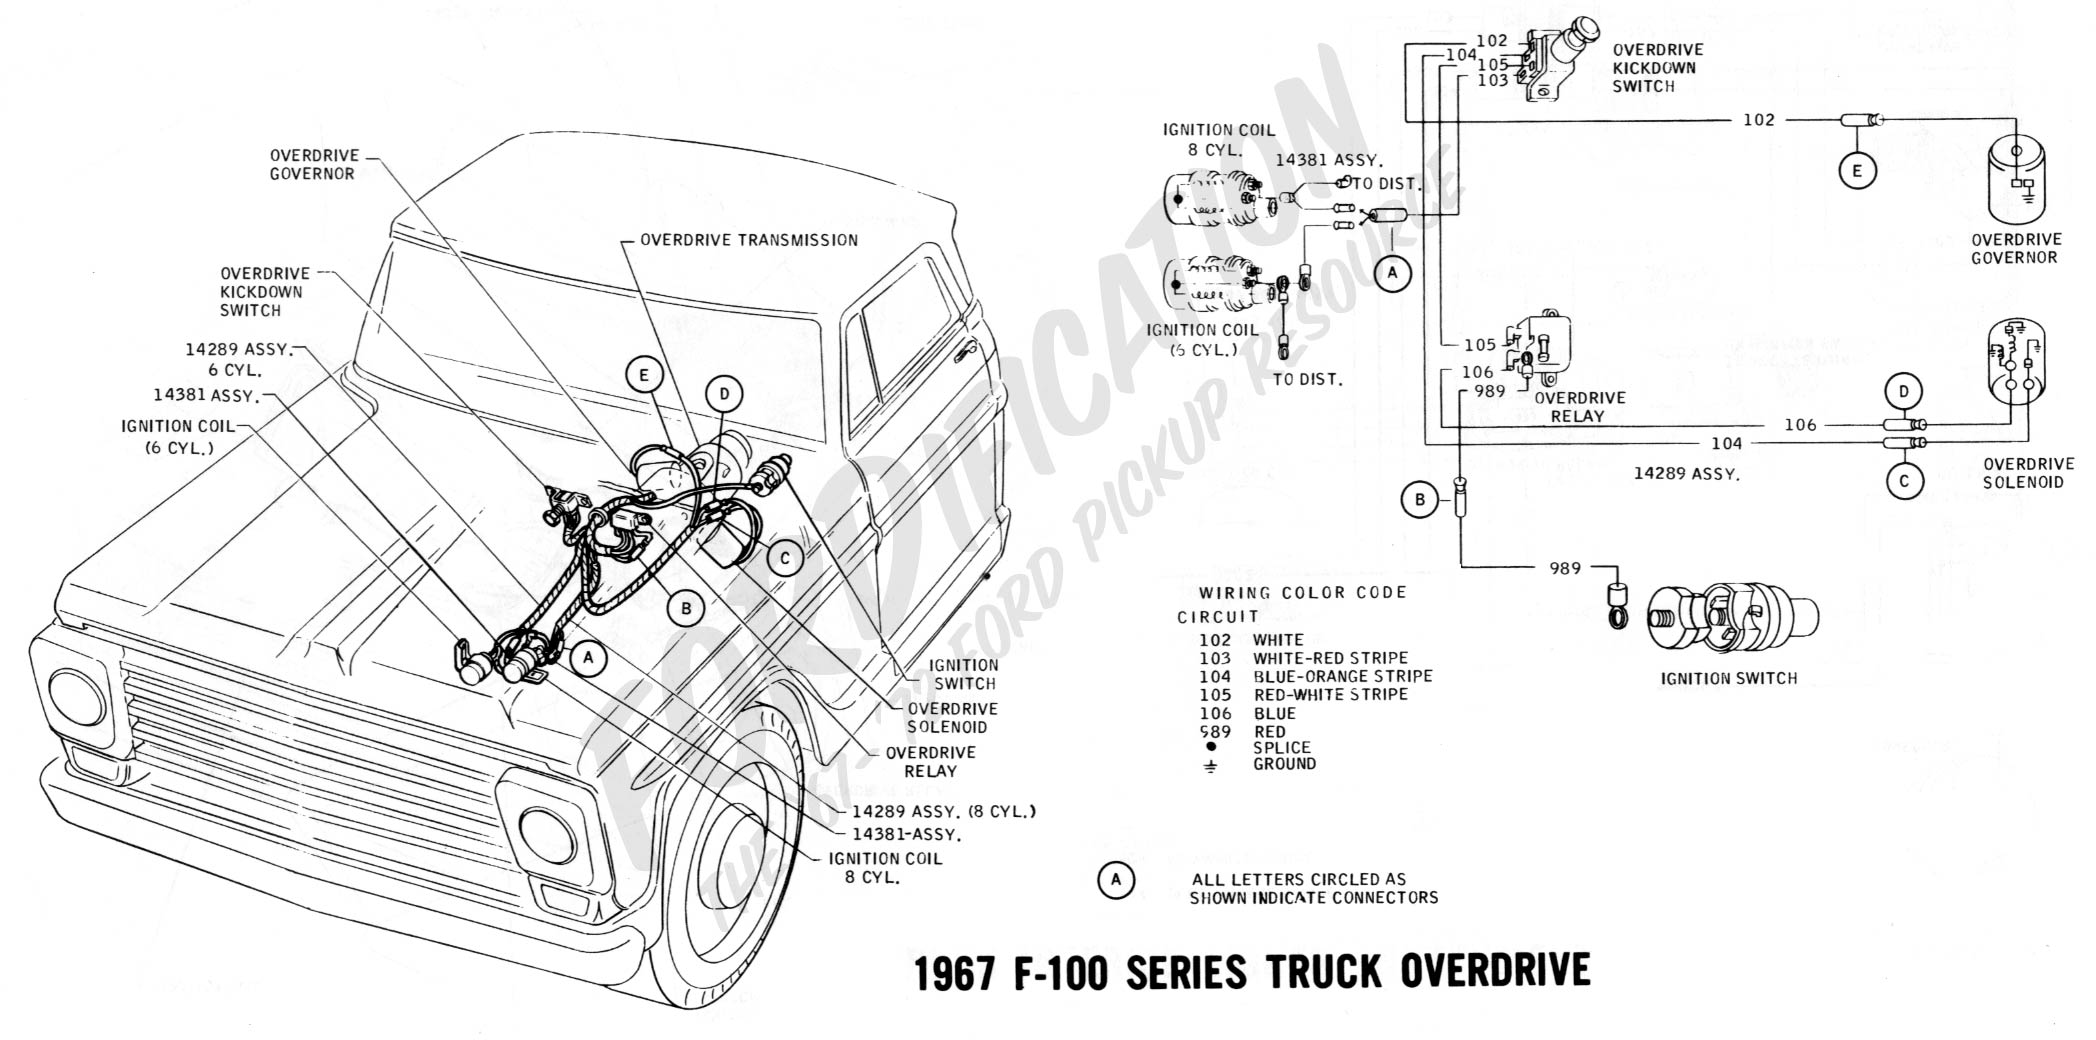 wiring 1967overdrive2 ford truck technical drawings and schematics section h wiring 1965 ford f100 wiring schematics at crackthecode.co